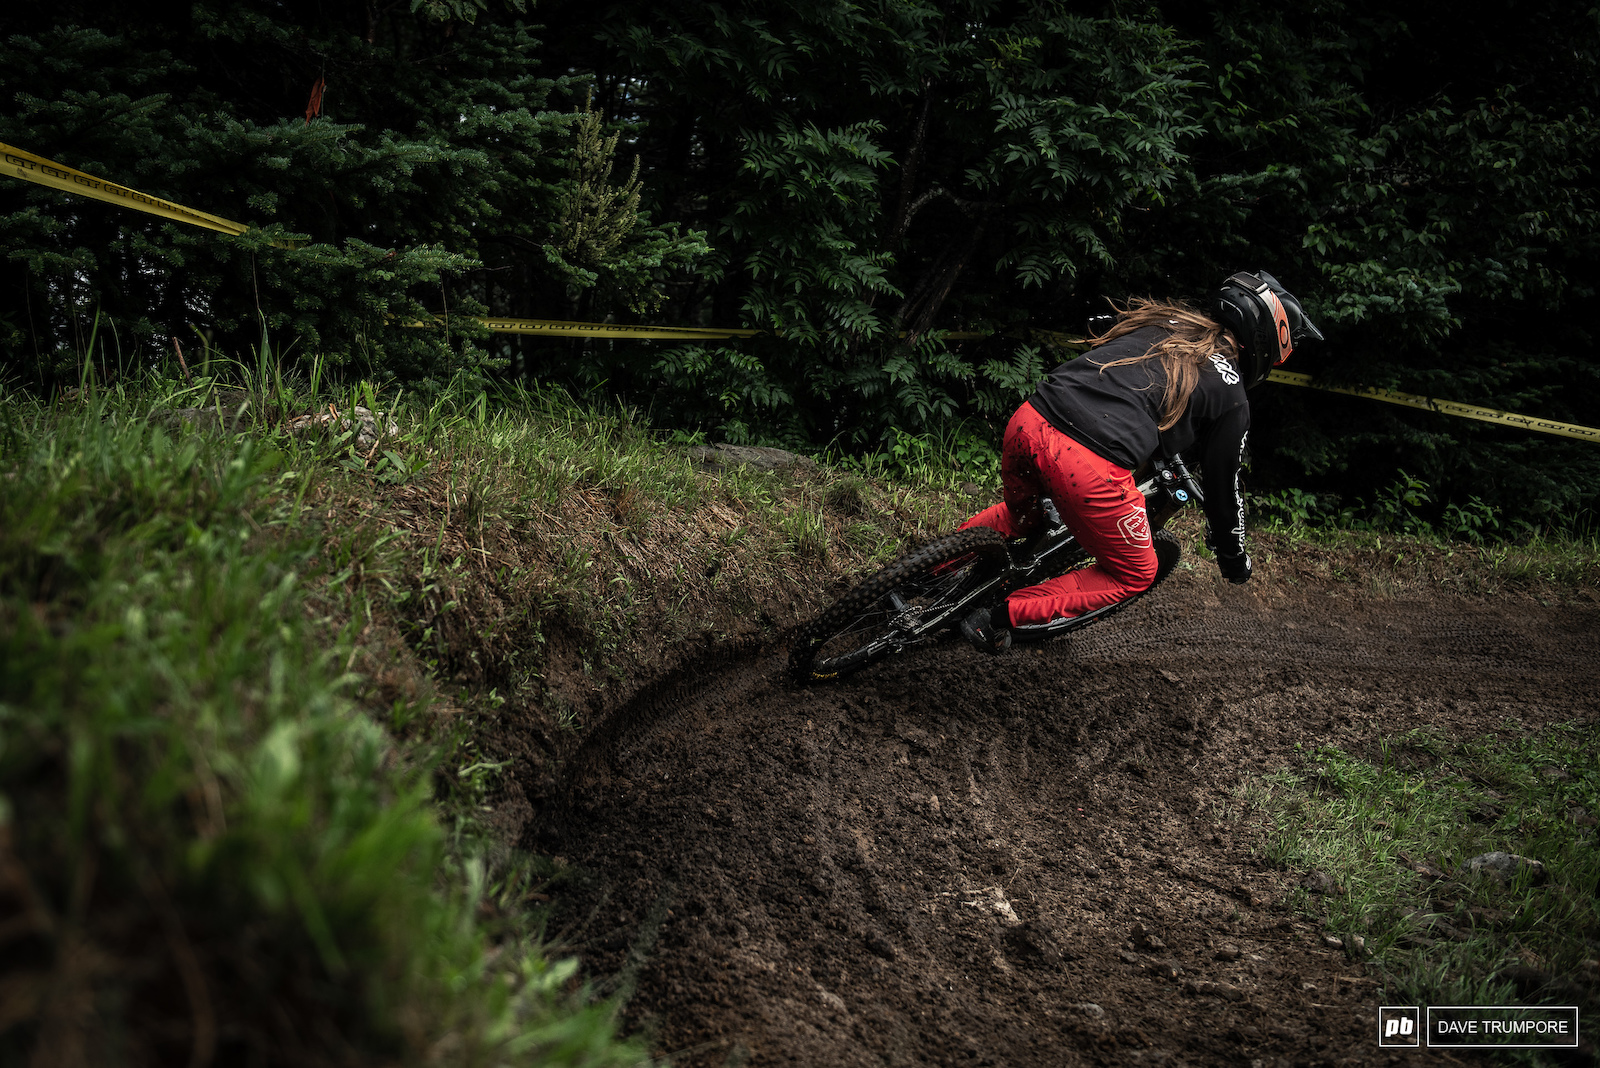 Raining ruts and keeping it rubber side down on a track that caused numerous crashes Vaea Verbeeck would take the US Open Women s title by an 8 second margin.